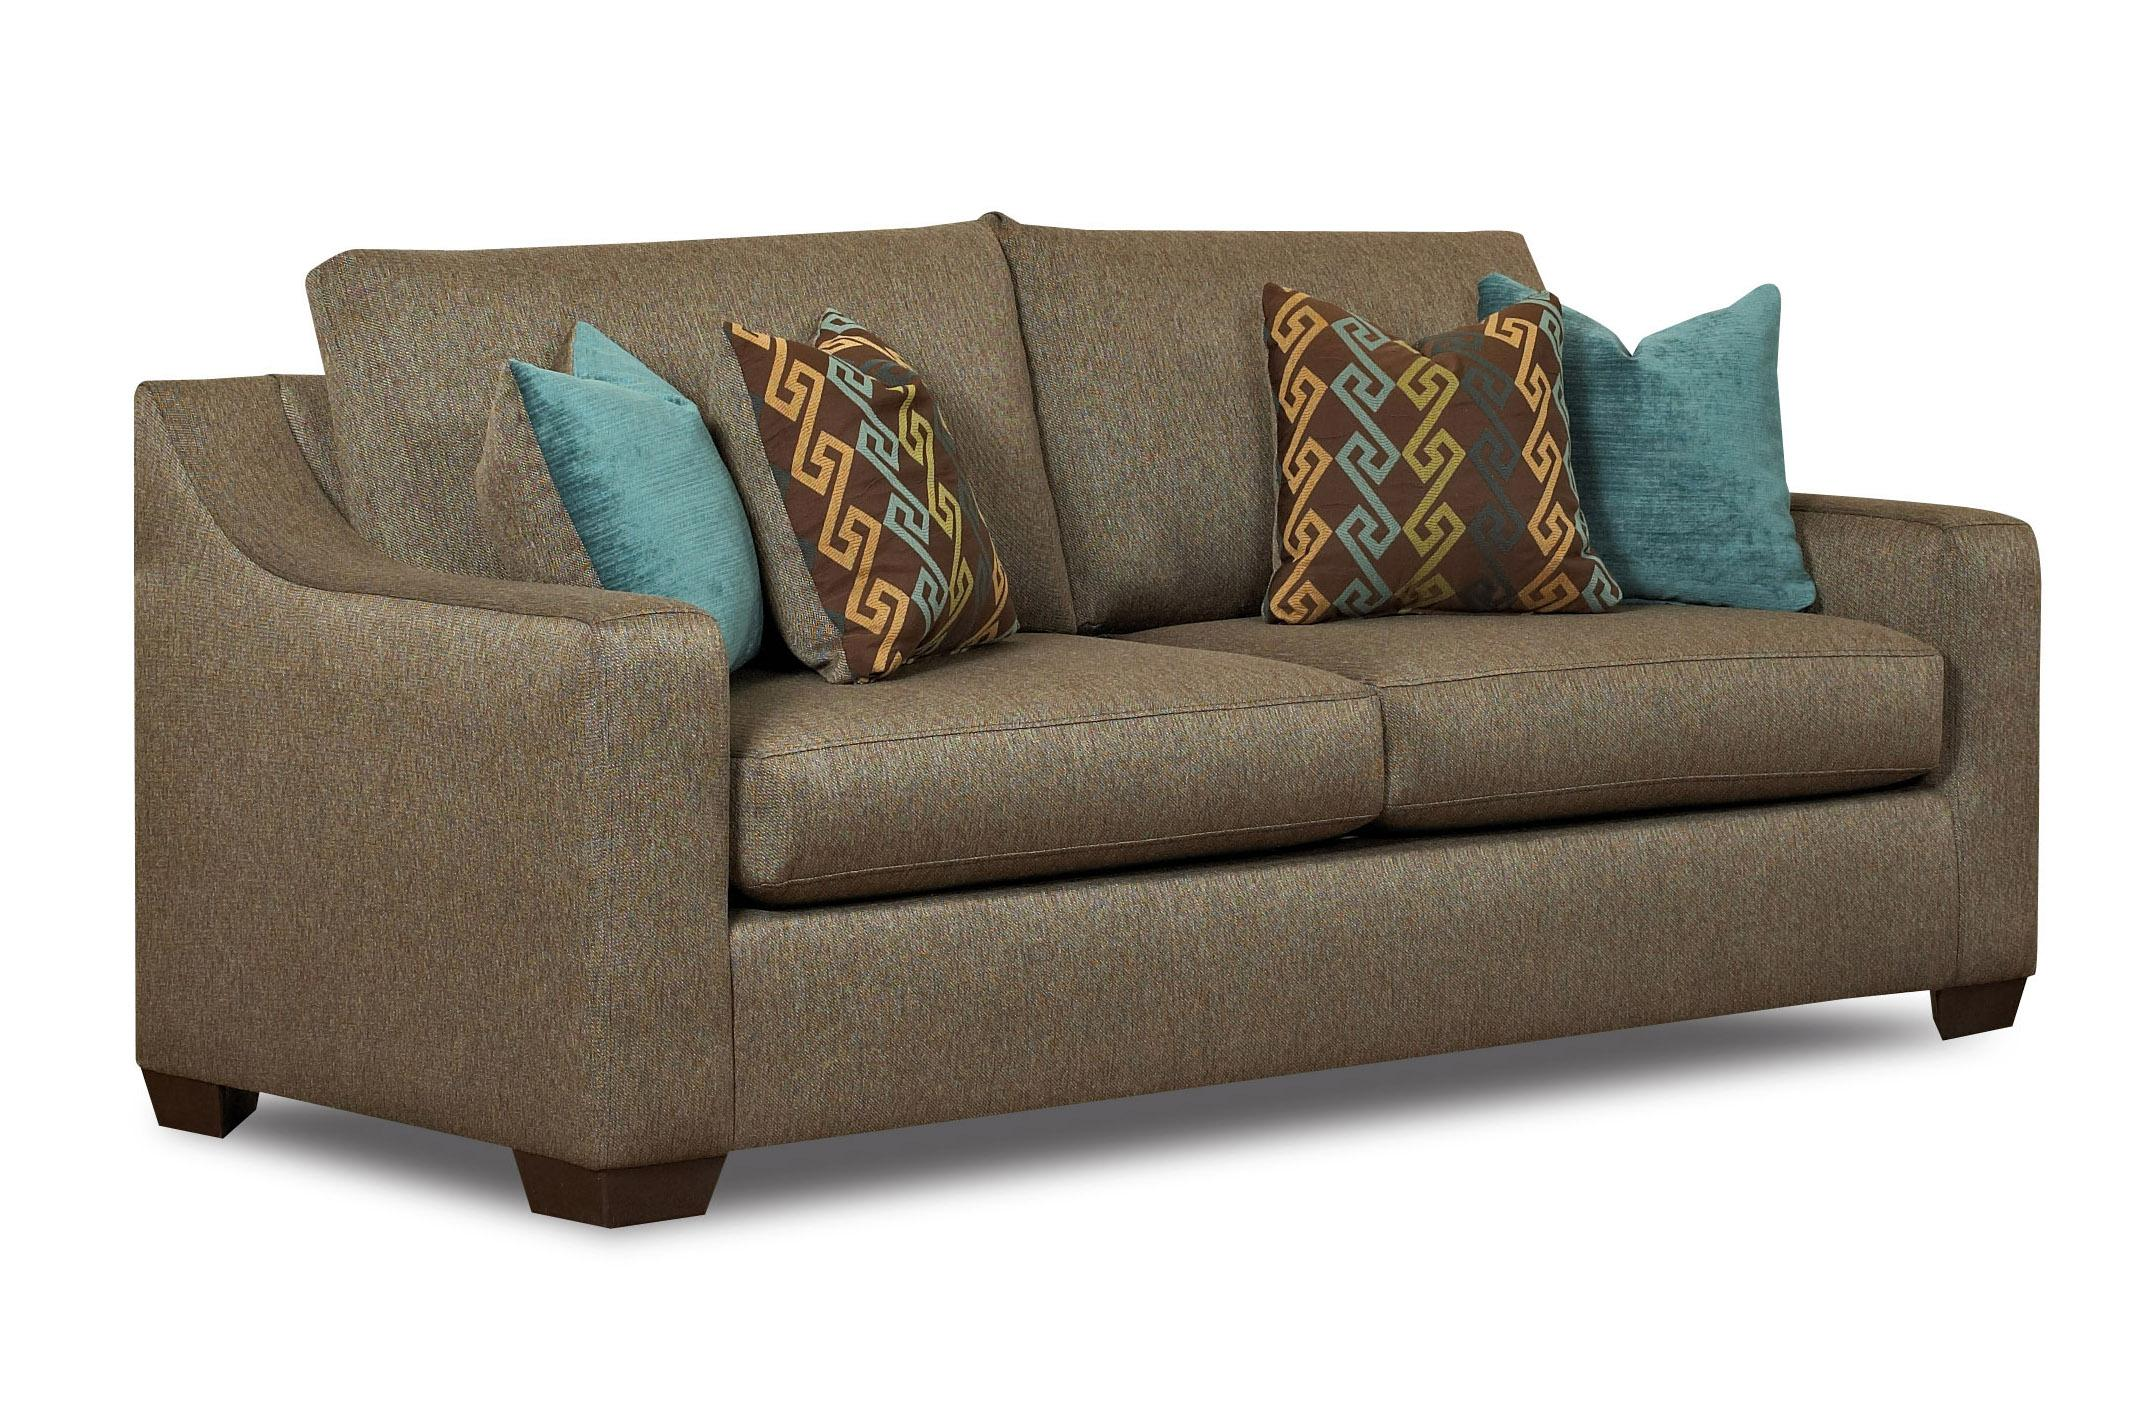 Contemporary Enso Sleeper Sofa with Sloped Arms and Loose Back